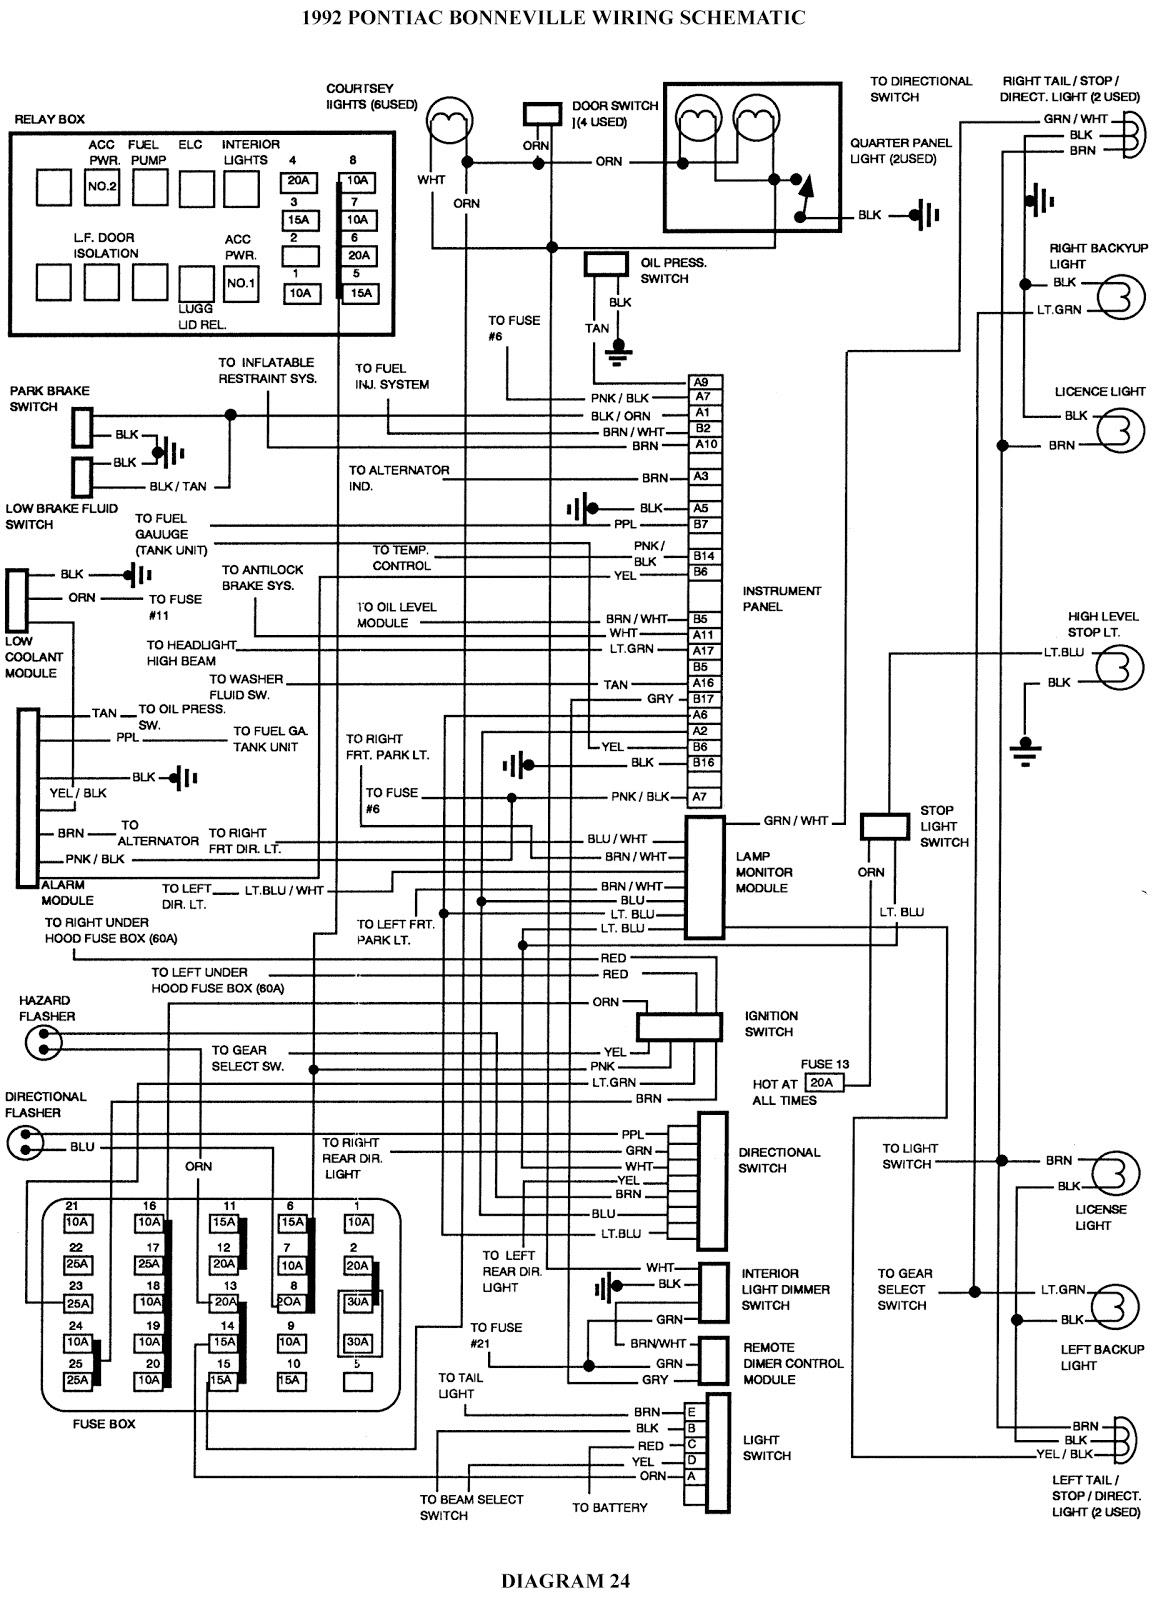 fuse diagram for dodge ram 1500  u2013 electrical schematic